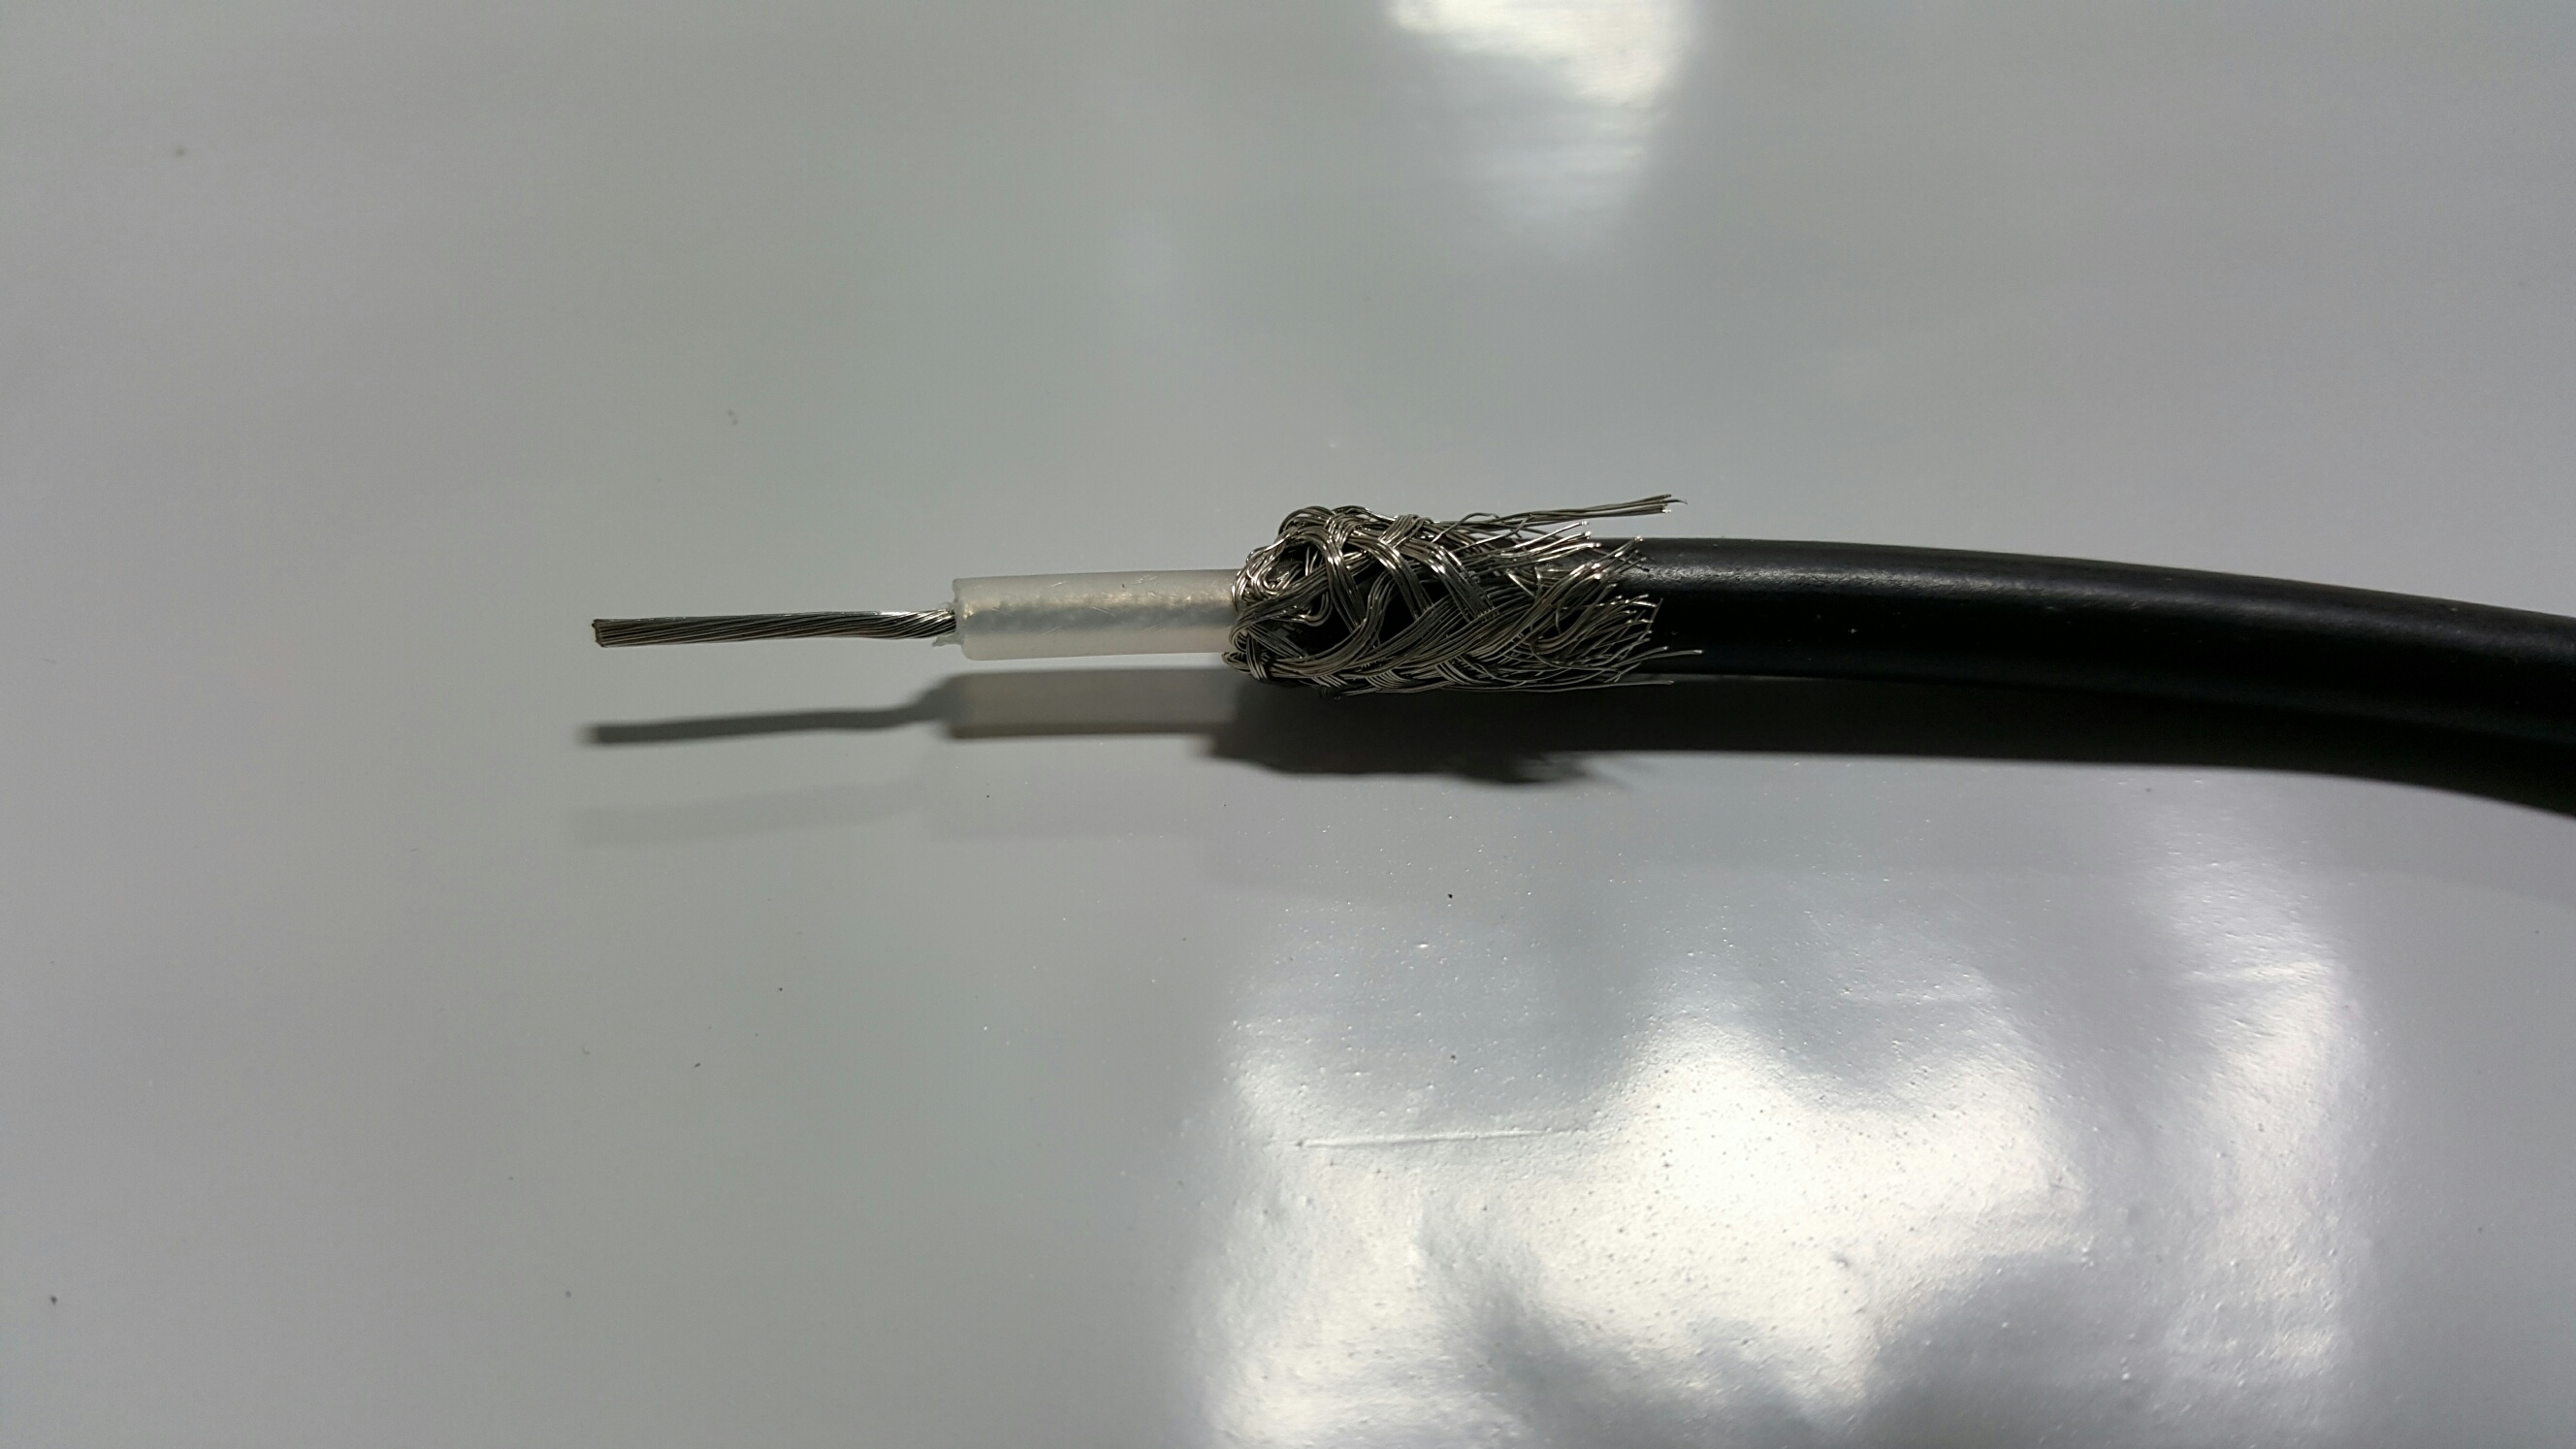 CUTTING A UHF CABLE TO CONNECT TO PL259